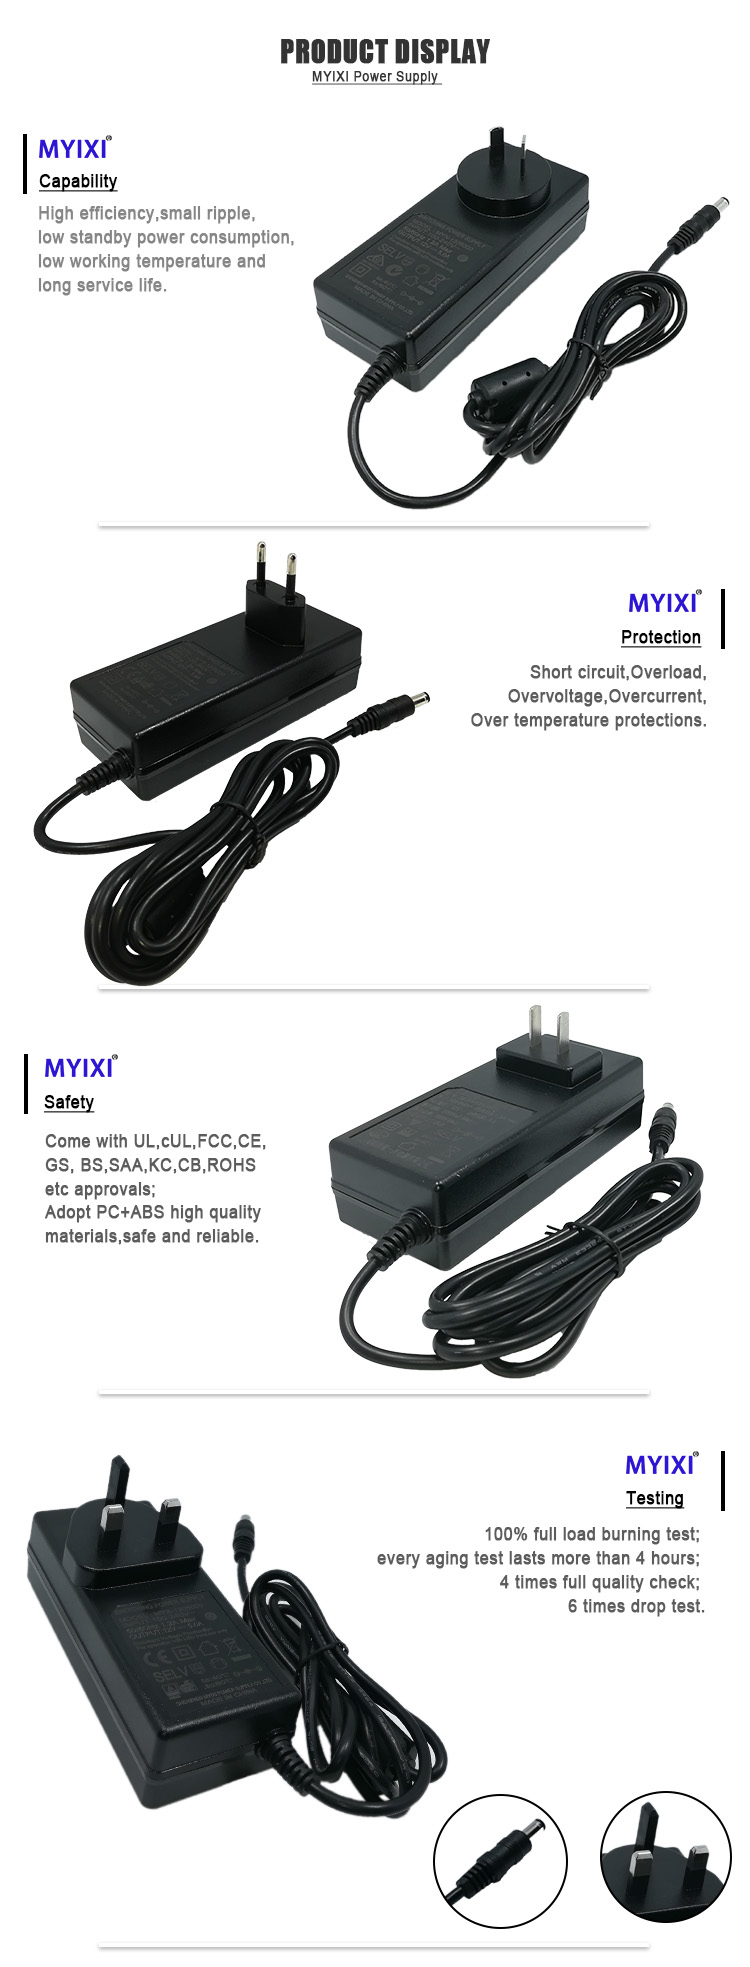 MYIXI zf120a-1205000 12 V 5A adaptador de energia digital photo frame